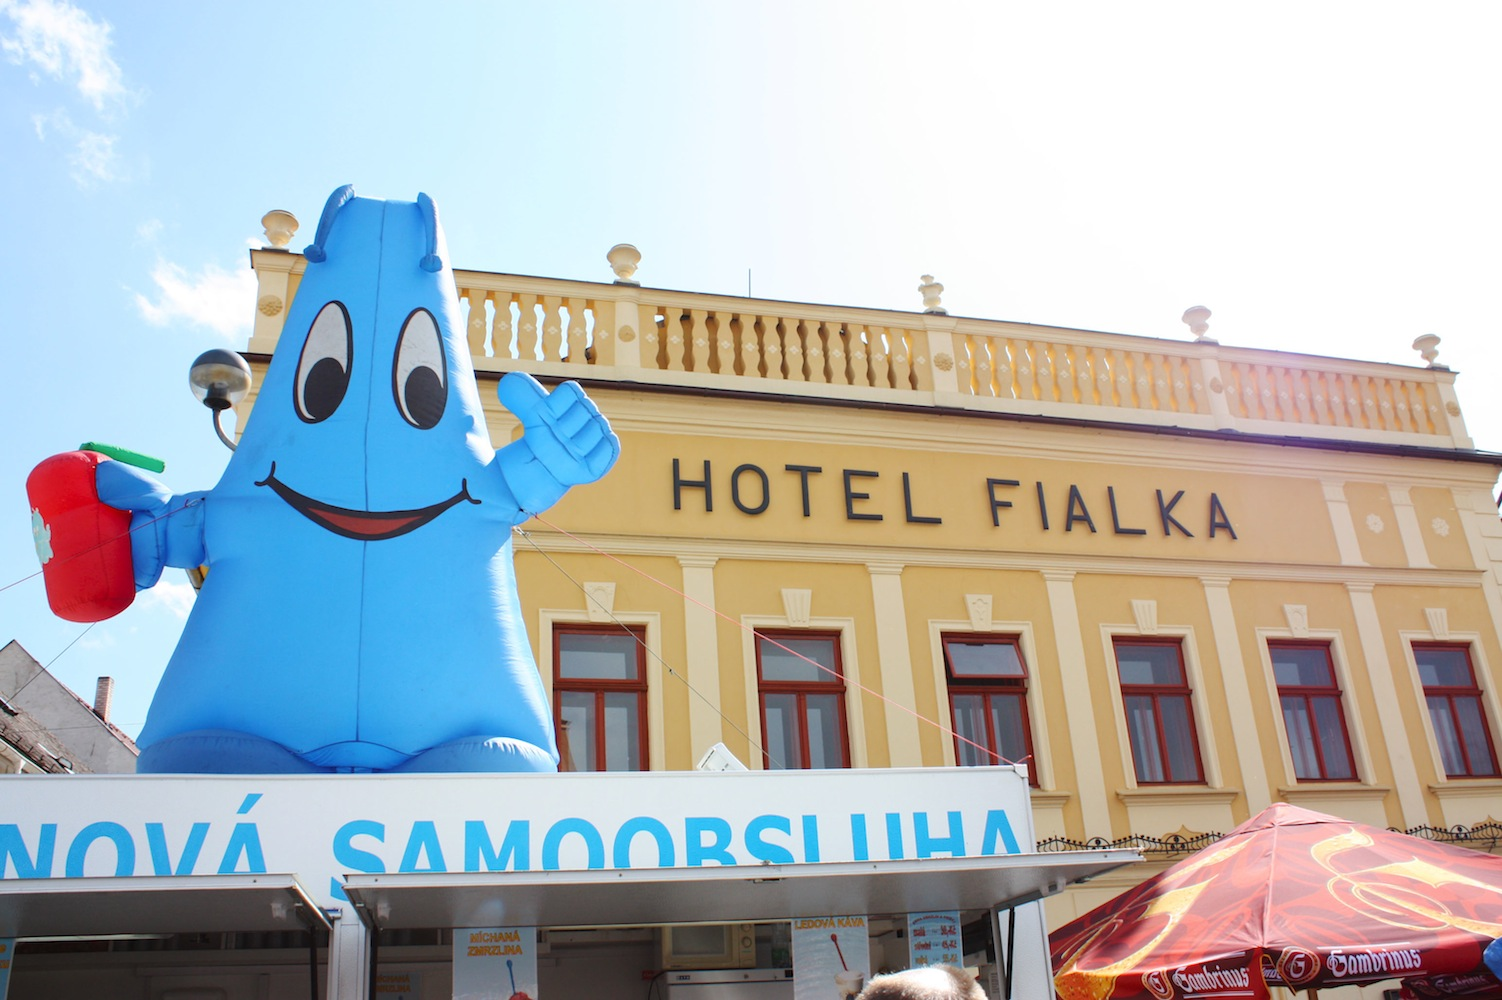 Picture of the Hotel Fialka